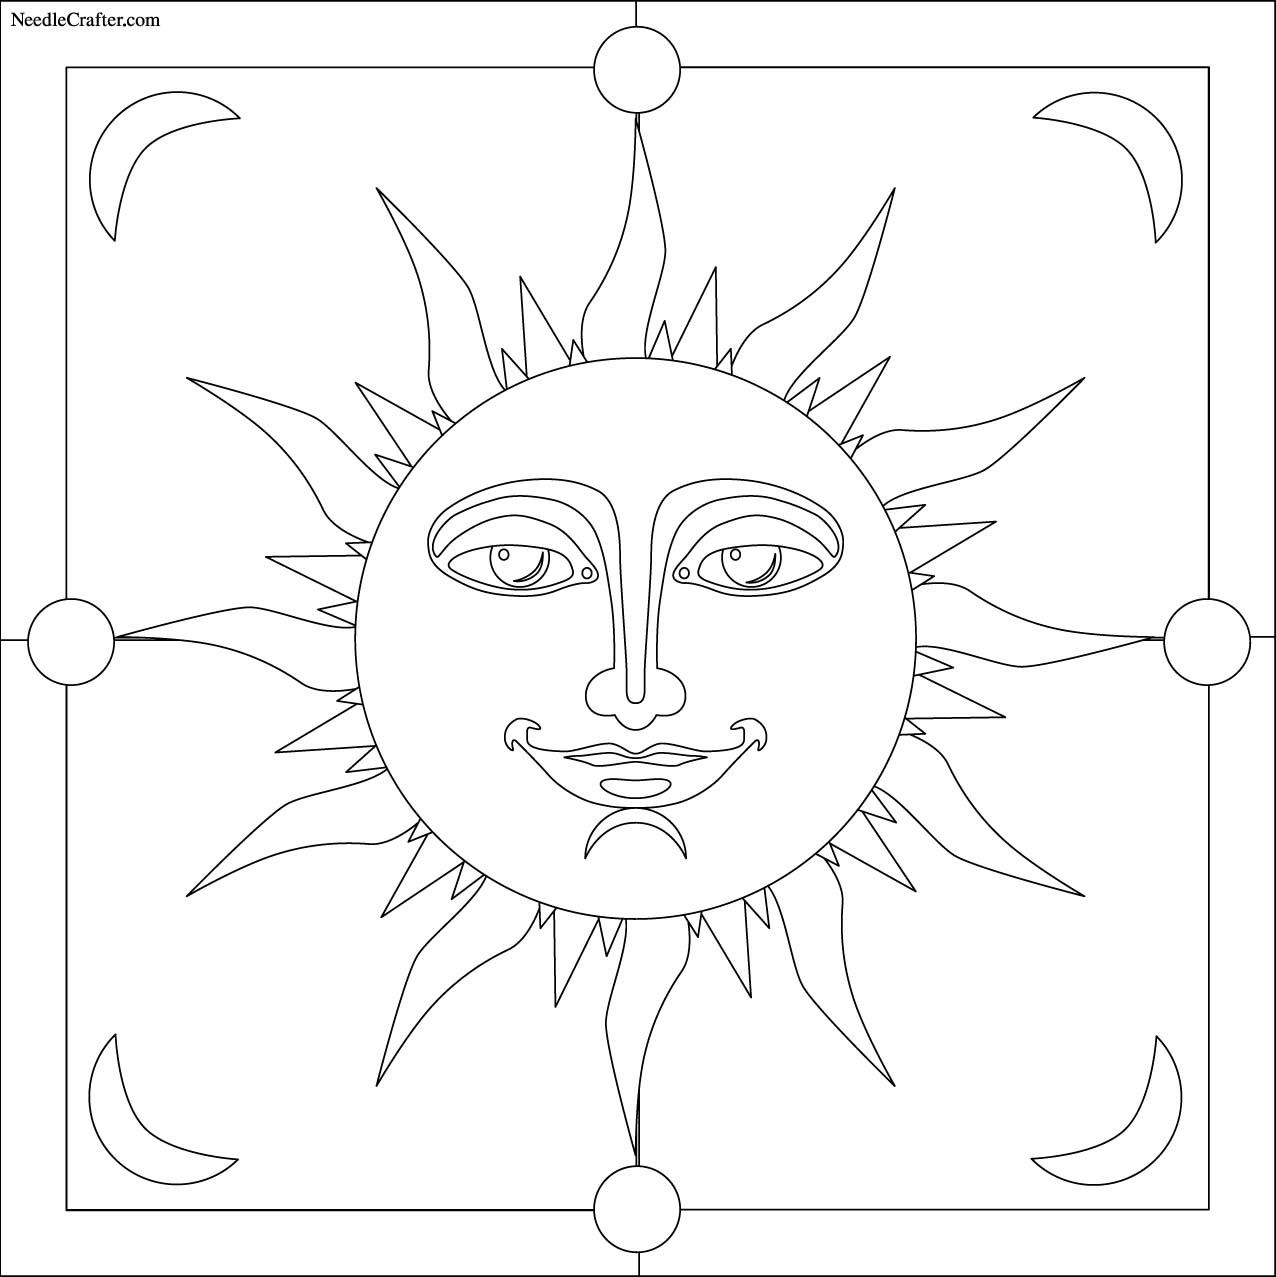 Free: Sun embroidery pattern